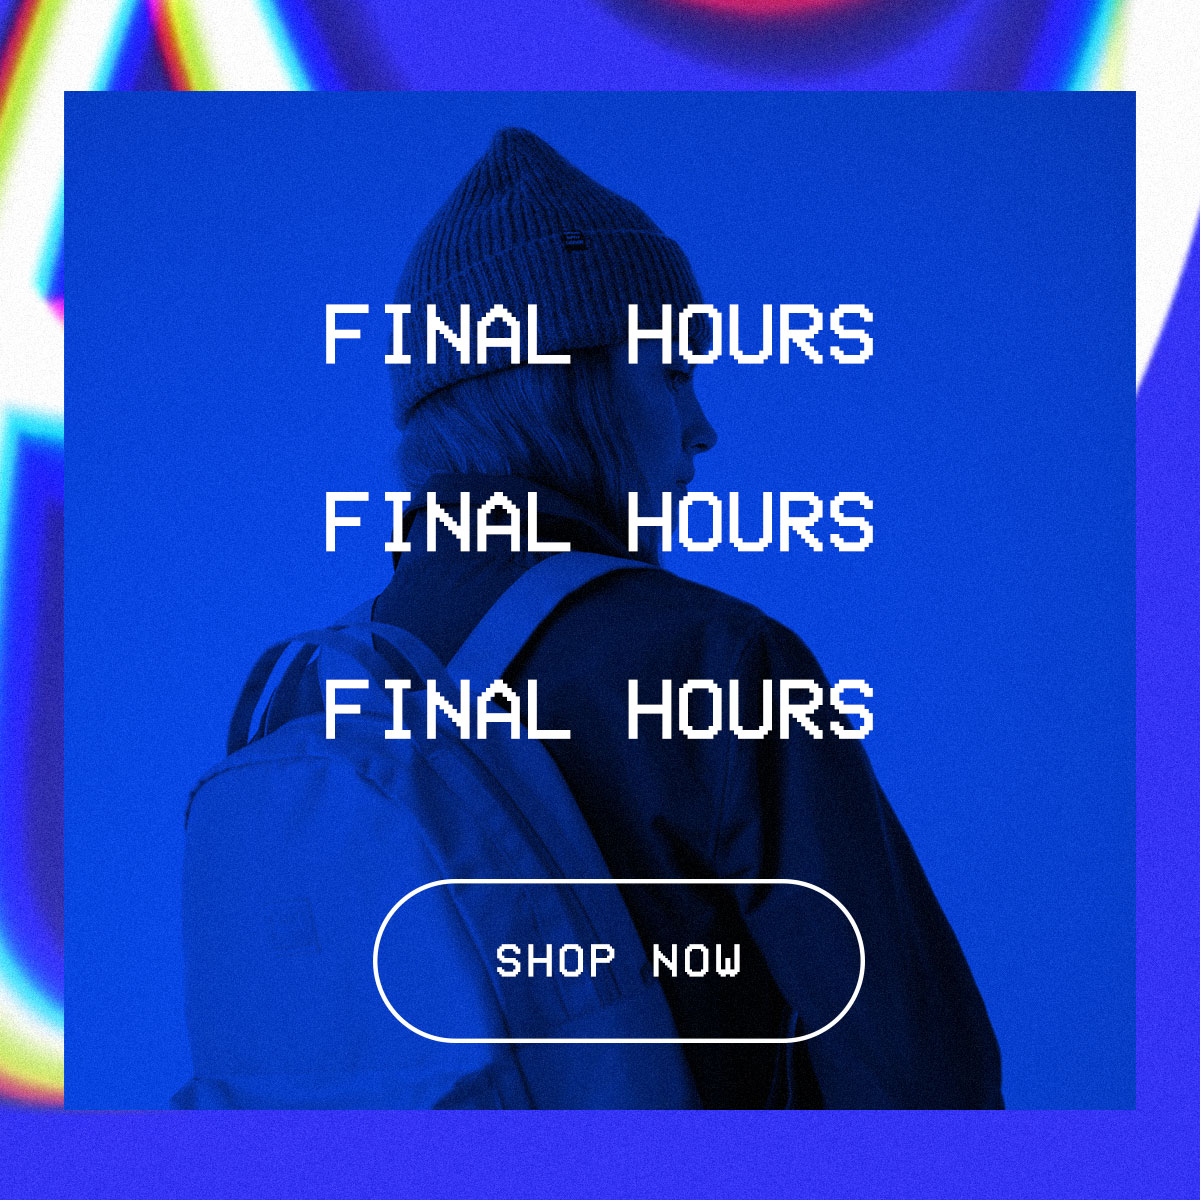 Final hours. Shop now >>